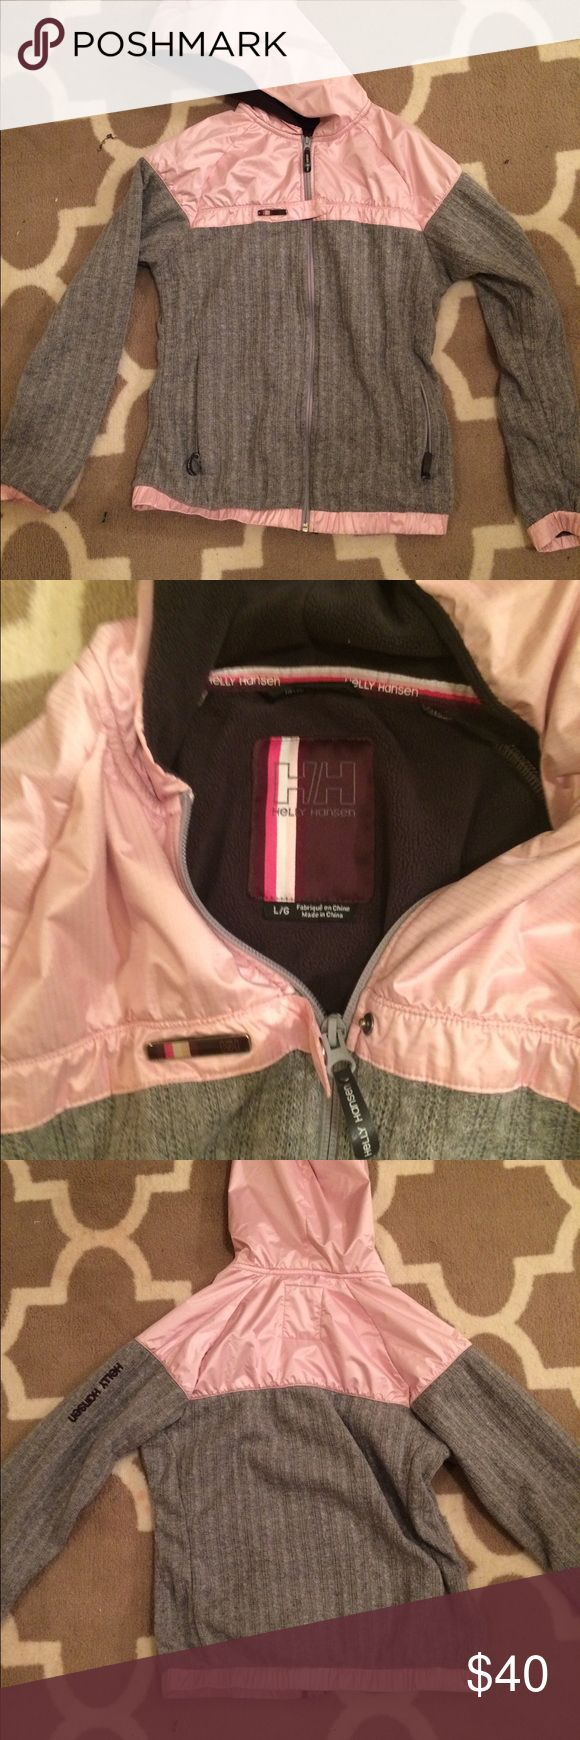 Helly Hansen jacket Pink and Grey jacket from hello Hensen jacket used size large. Good shape. I don't accept offers but I do 10% off 2+ bundle! Helly Hansen Jackets & Coats